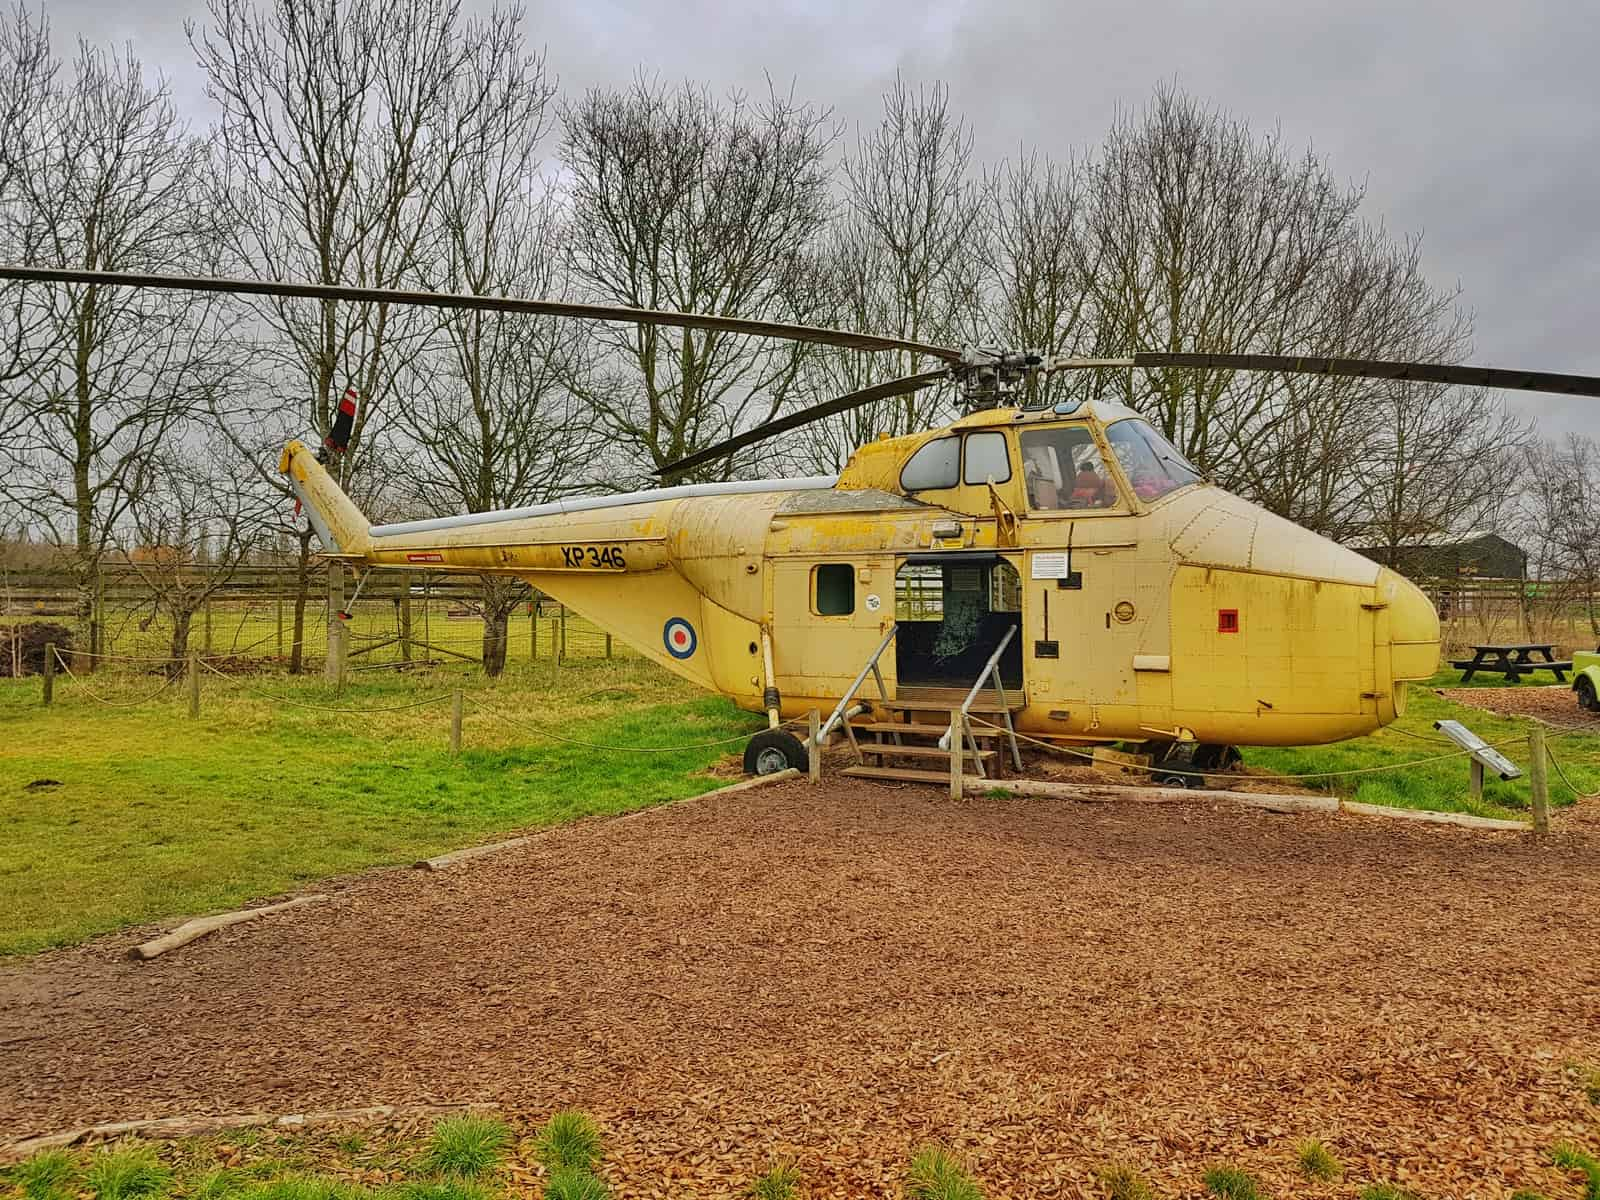 Helicopter in children's park at All Things Wild near Evesham, West Midlands